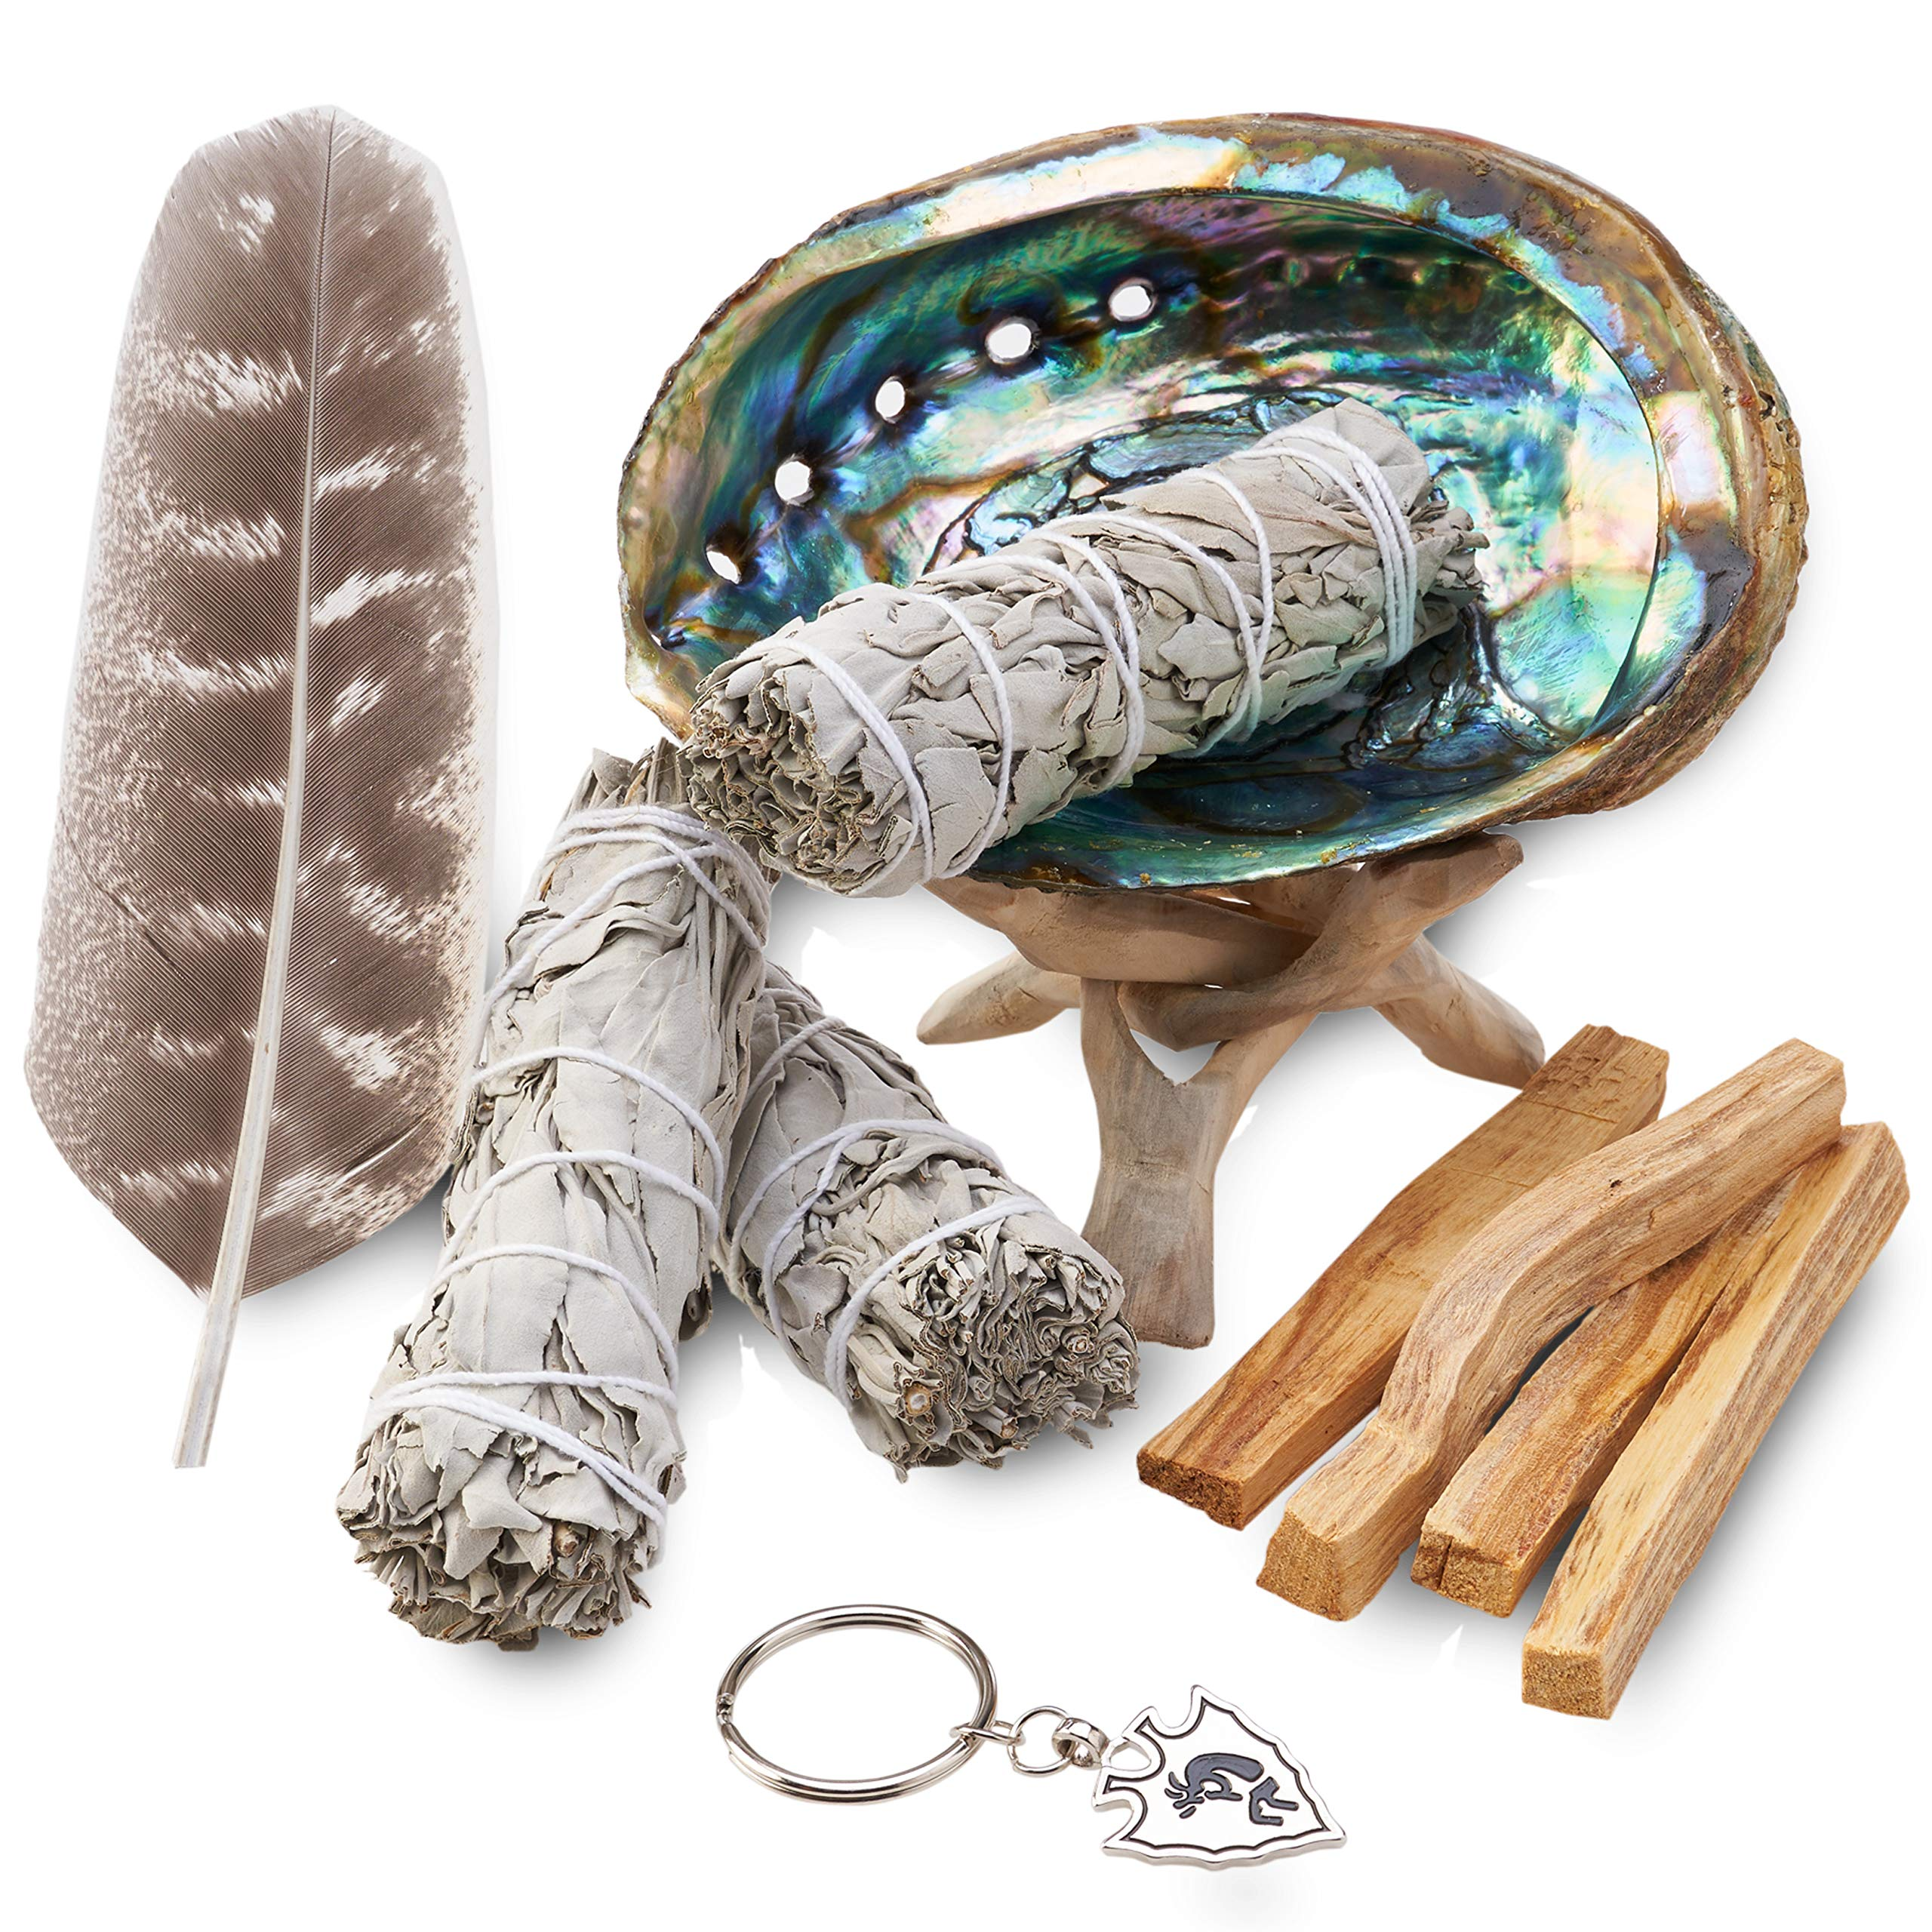 JL Local Smudge Kit - Sage, Palo Santo, Abalone Shell, Feather + More! Yoga, Meditating, Purify, Cleanse by JL Local (Image #1)